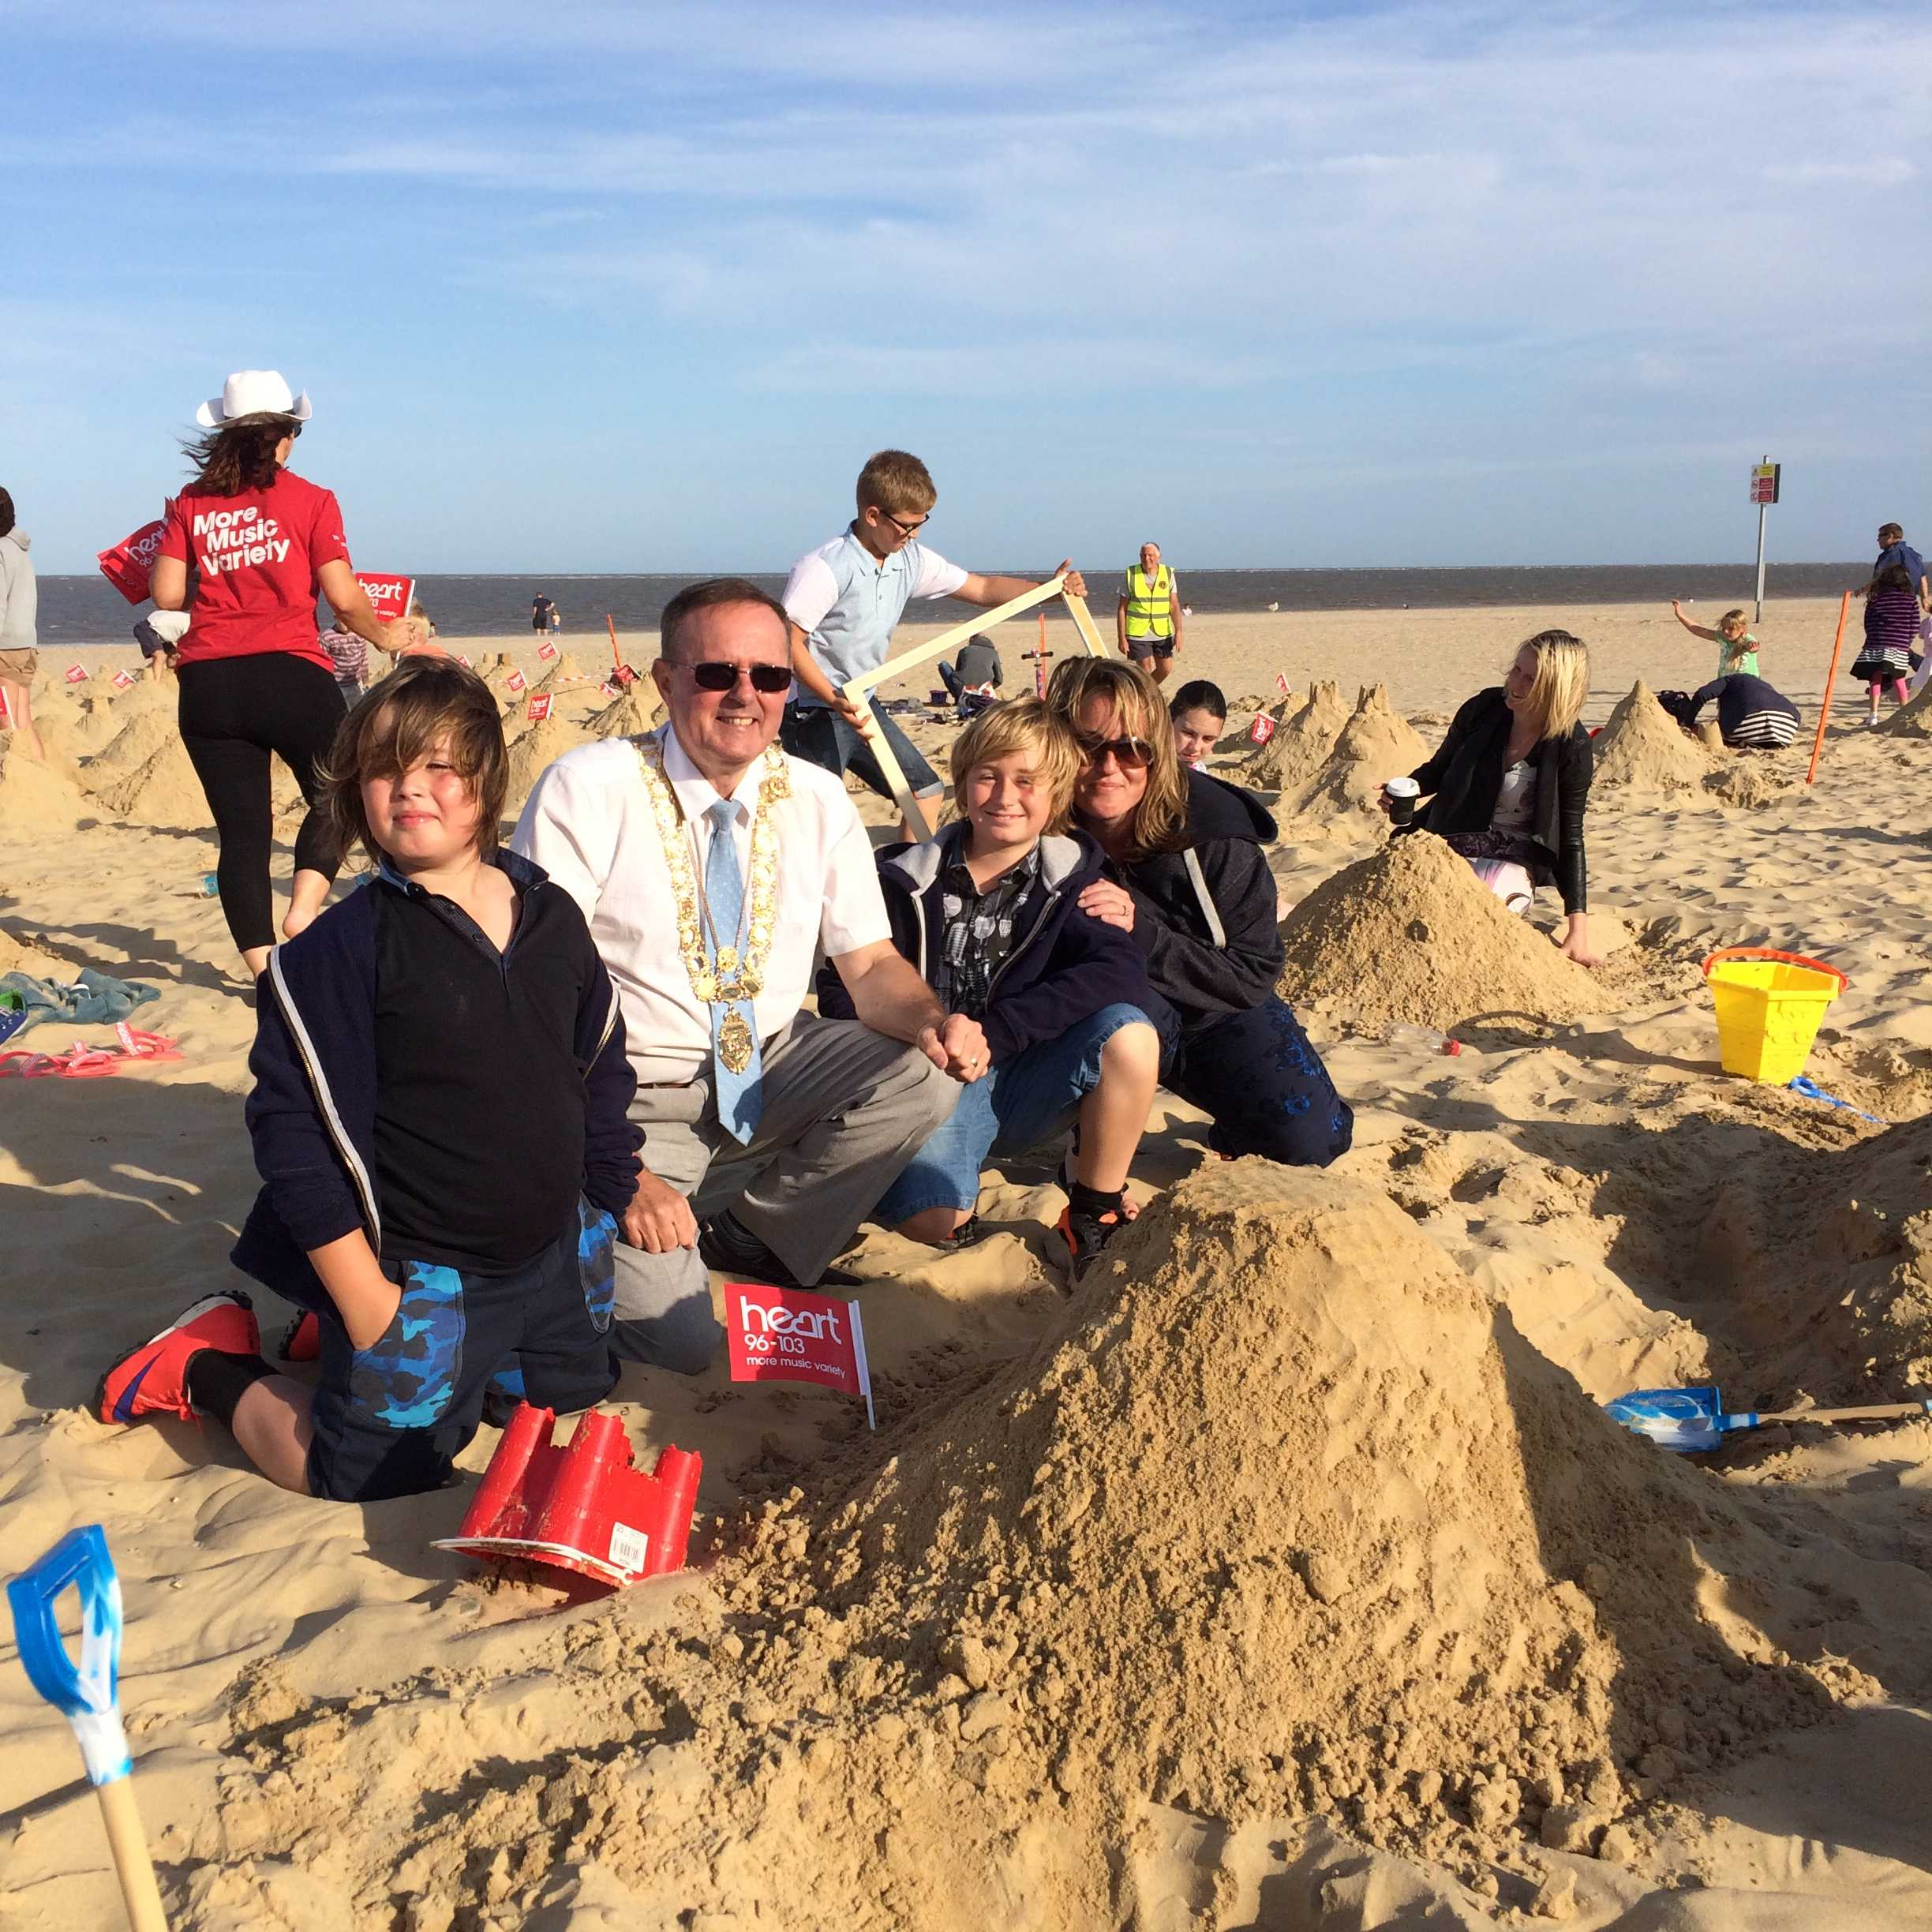 Lowestoft Summer Festival - Sandcastle record attempt Image 2